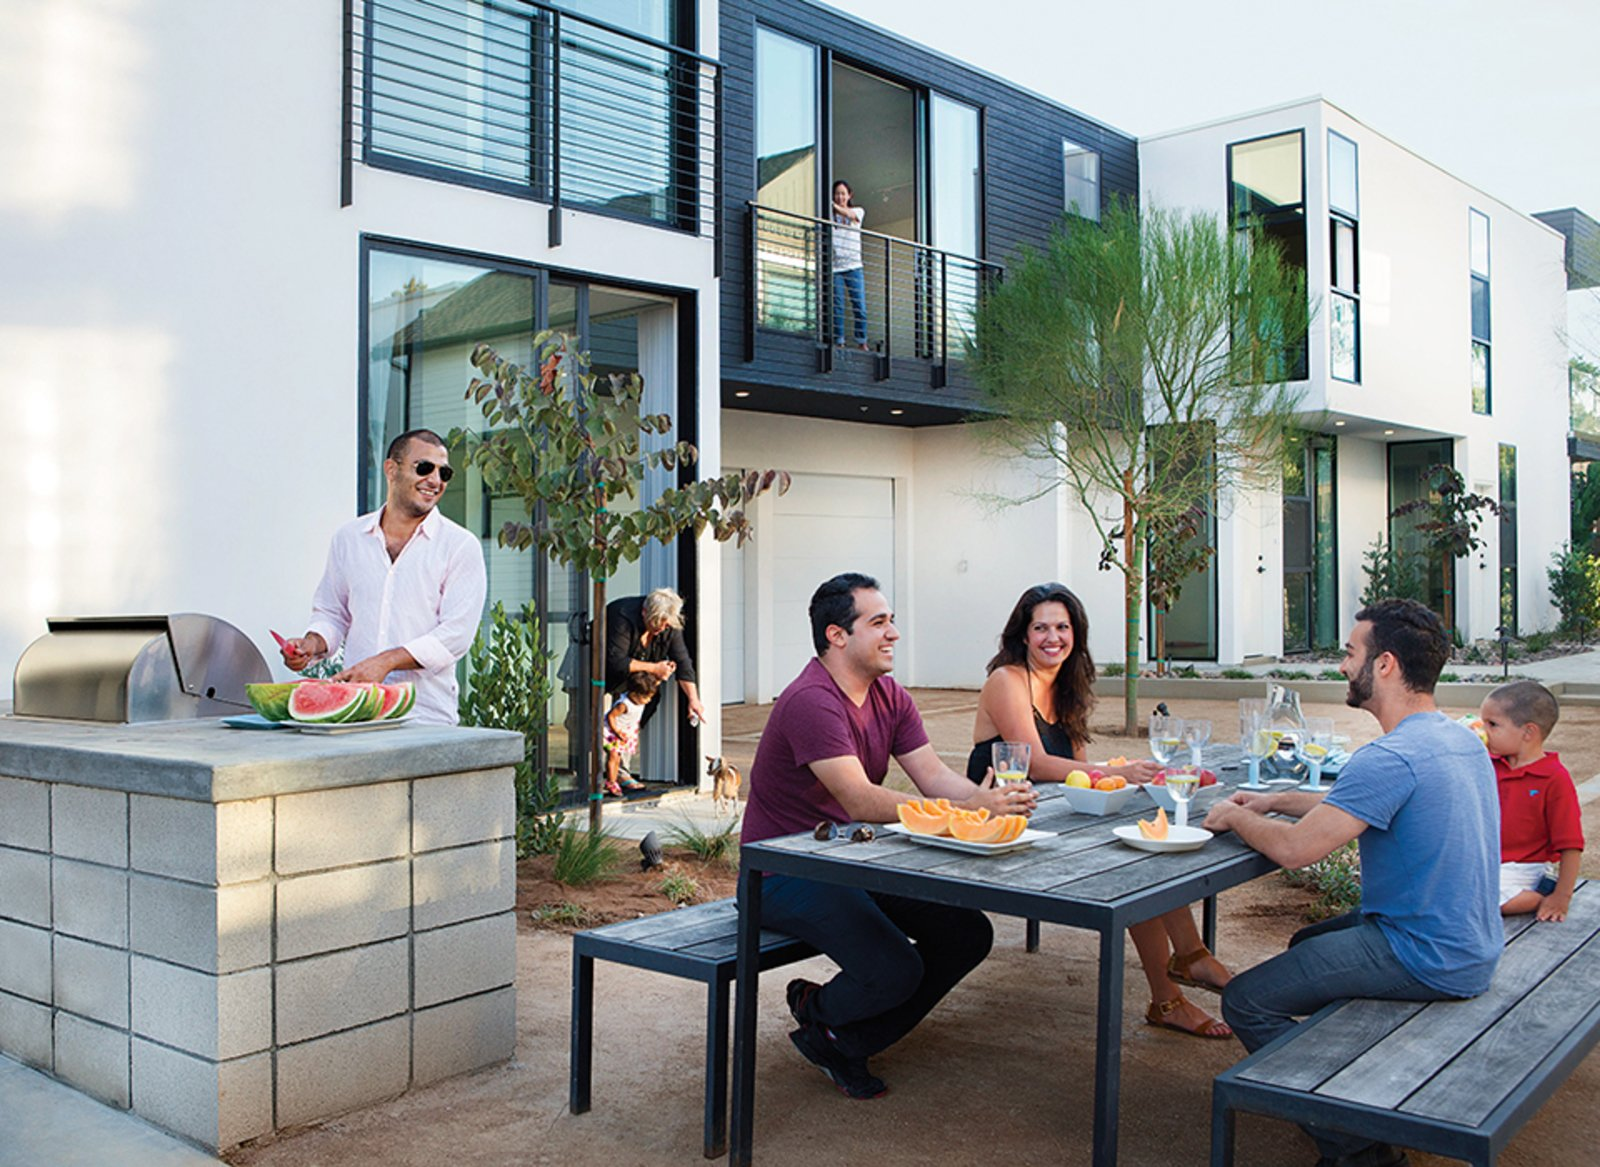 Photo 1 of 8 in 7 Steps to Creating Your Own Outdoor Barbecue Area For Summer Entertaining